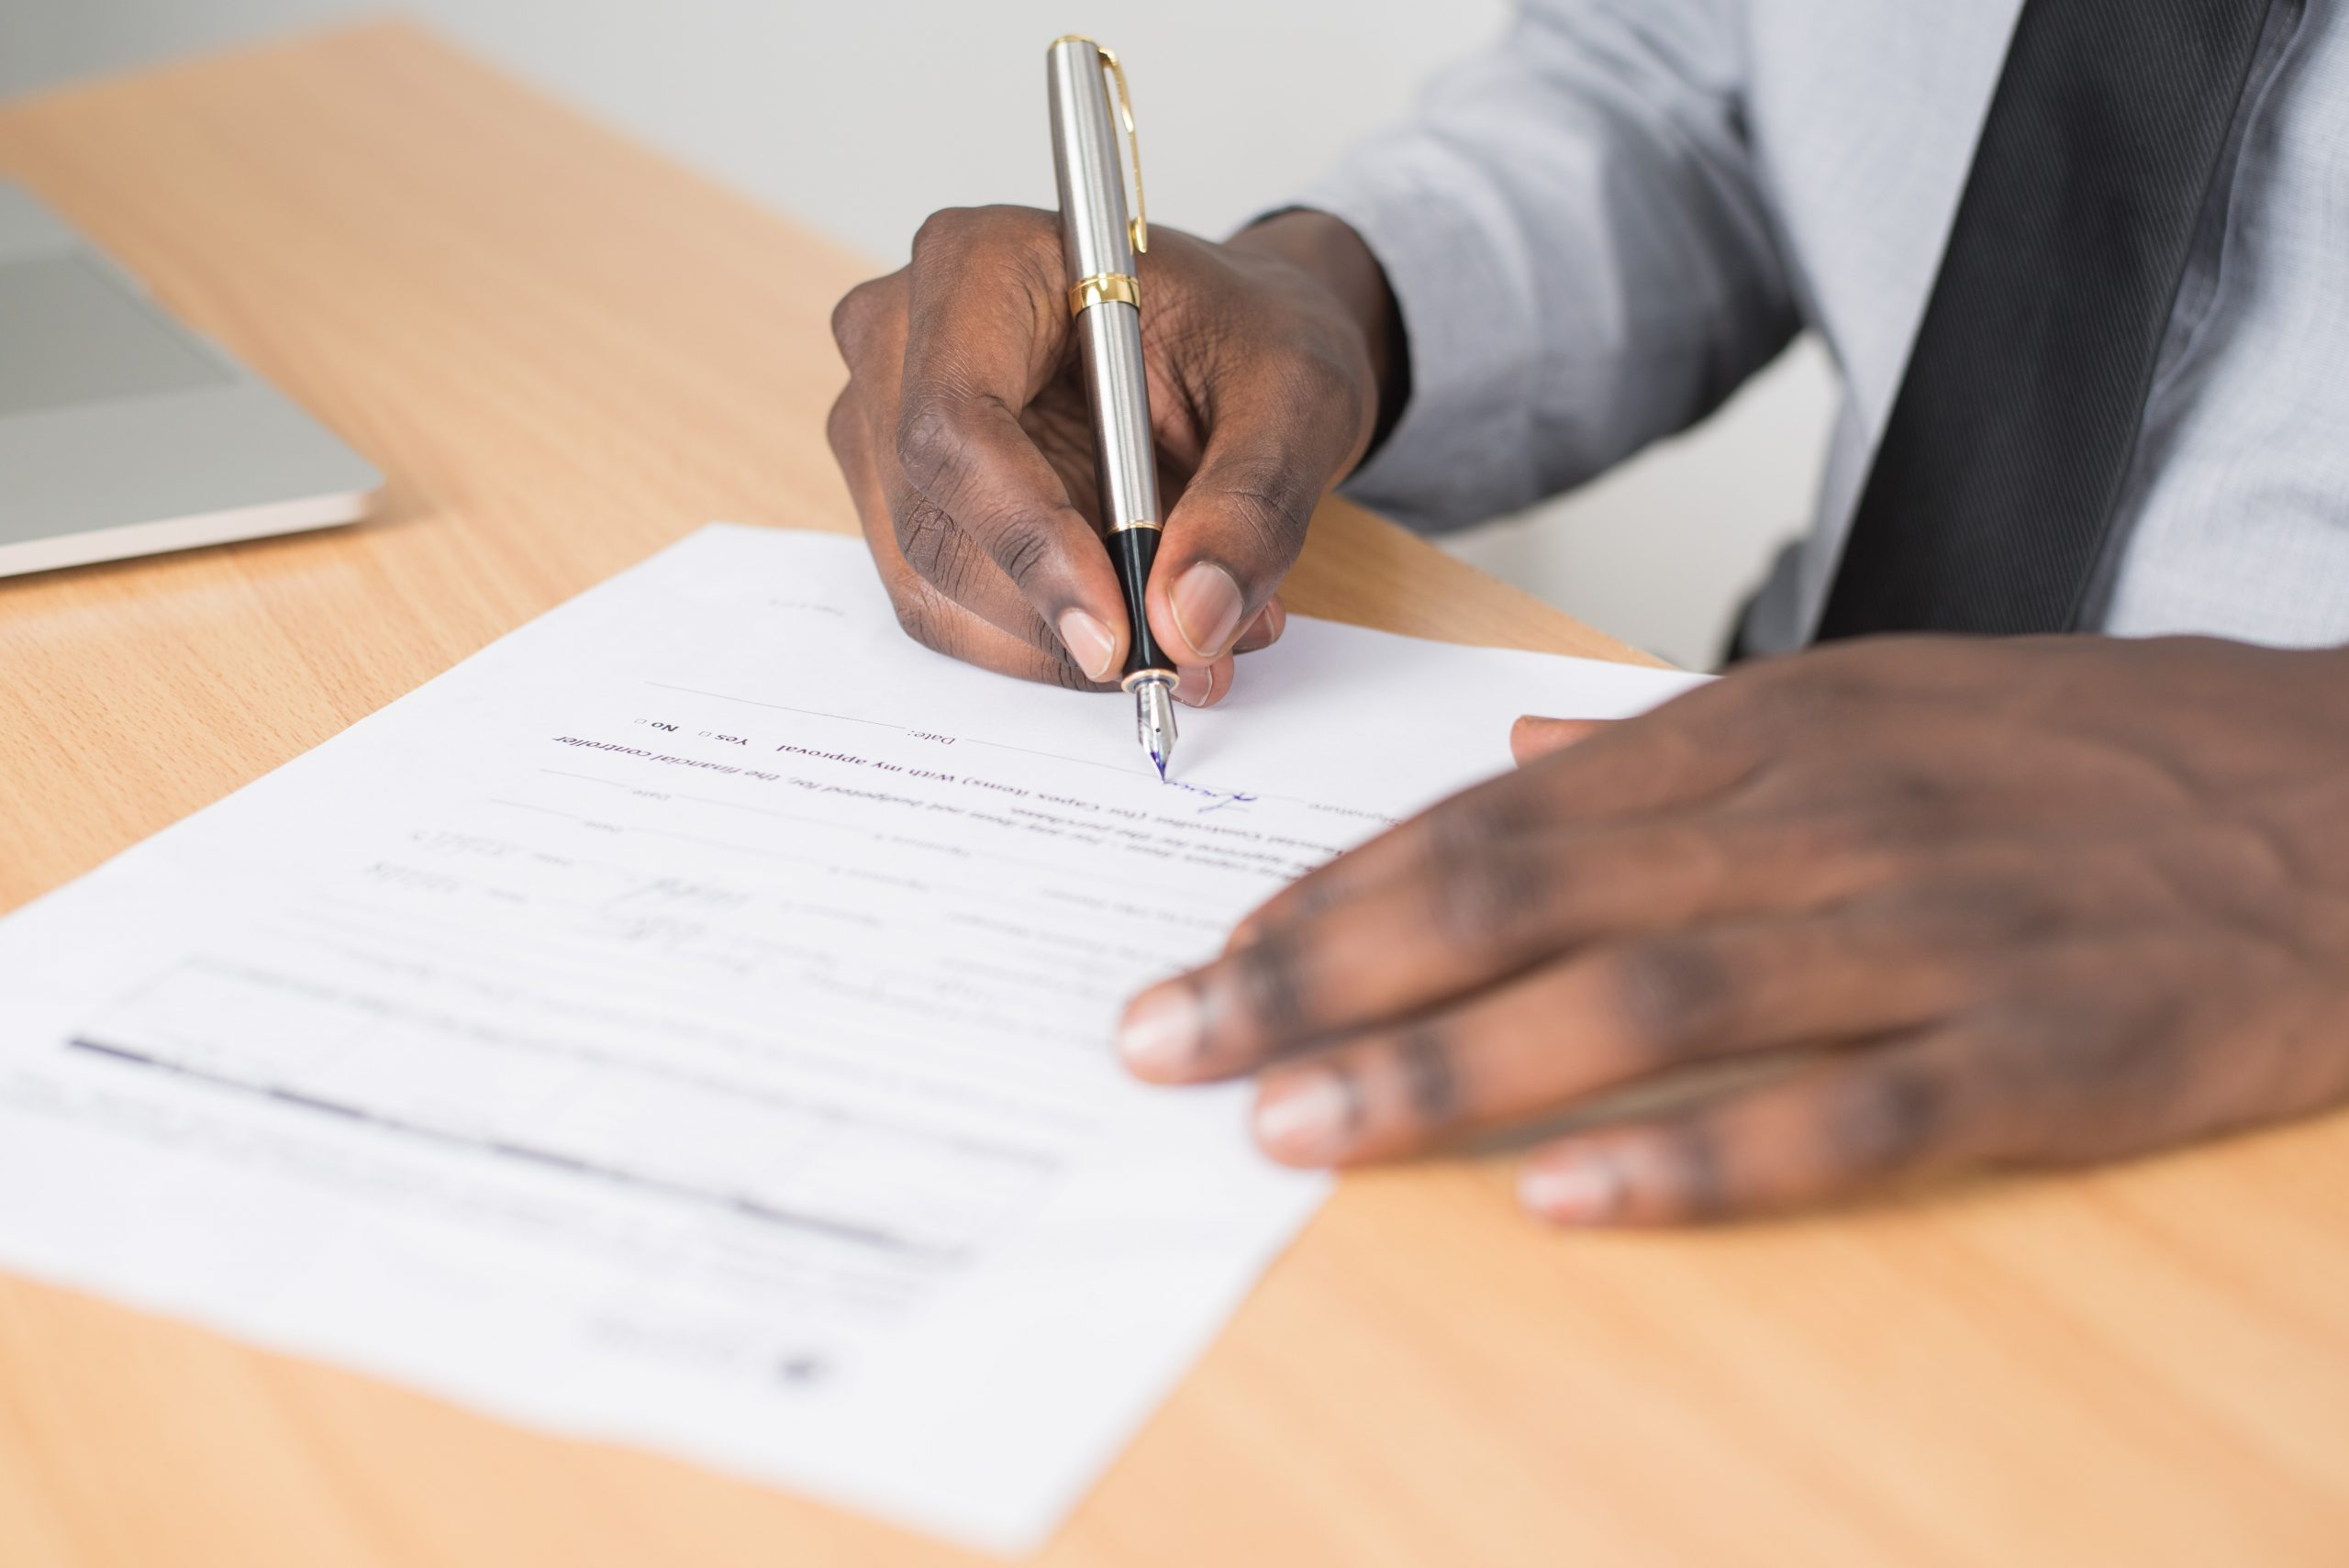 Person filling out insurance form